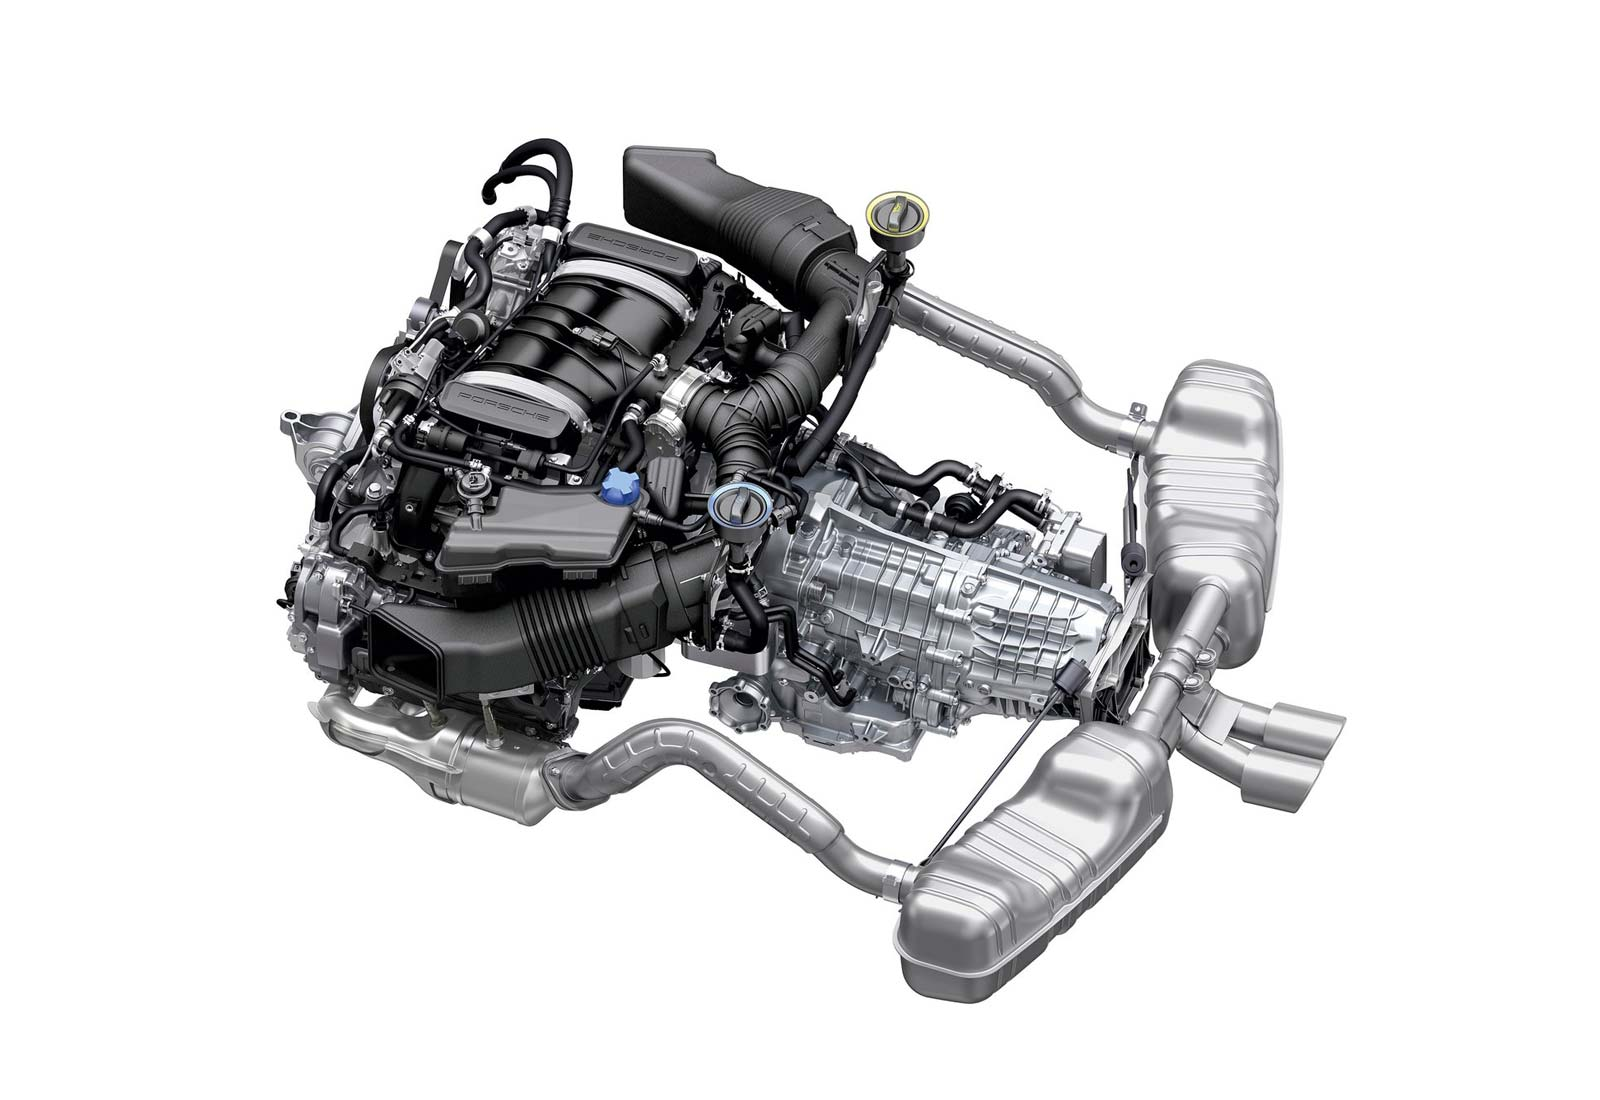 Cayman engine submited images